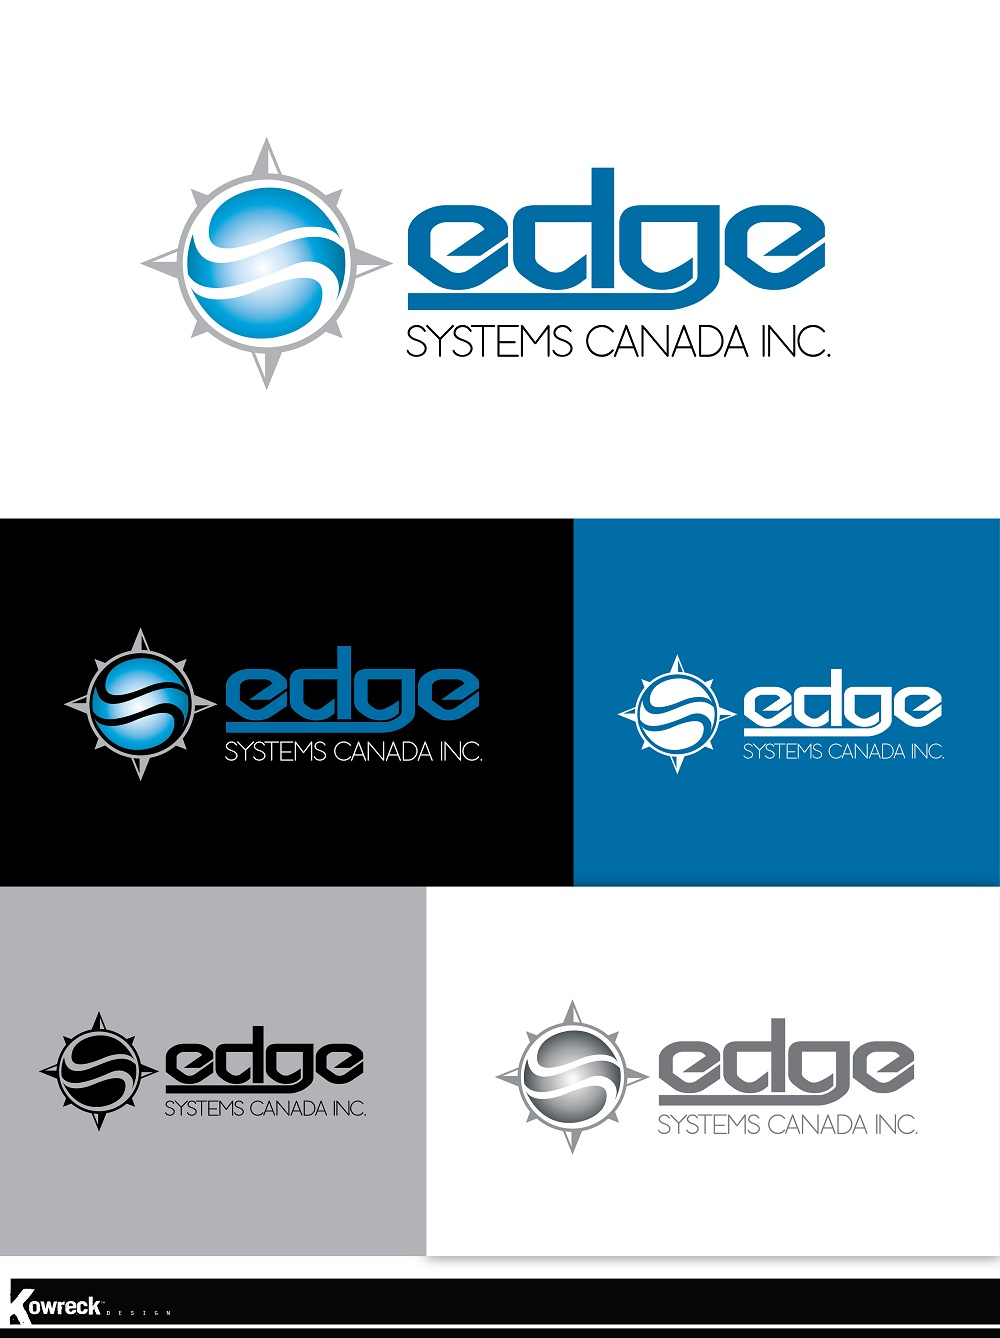 Logo Design by kowreck - Entry No. 53 in the Logo Design Contest New Logo Design for Edge Systems Canada Inc.